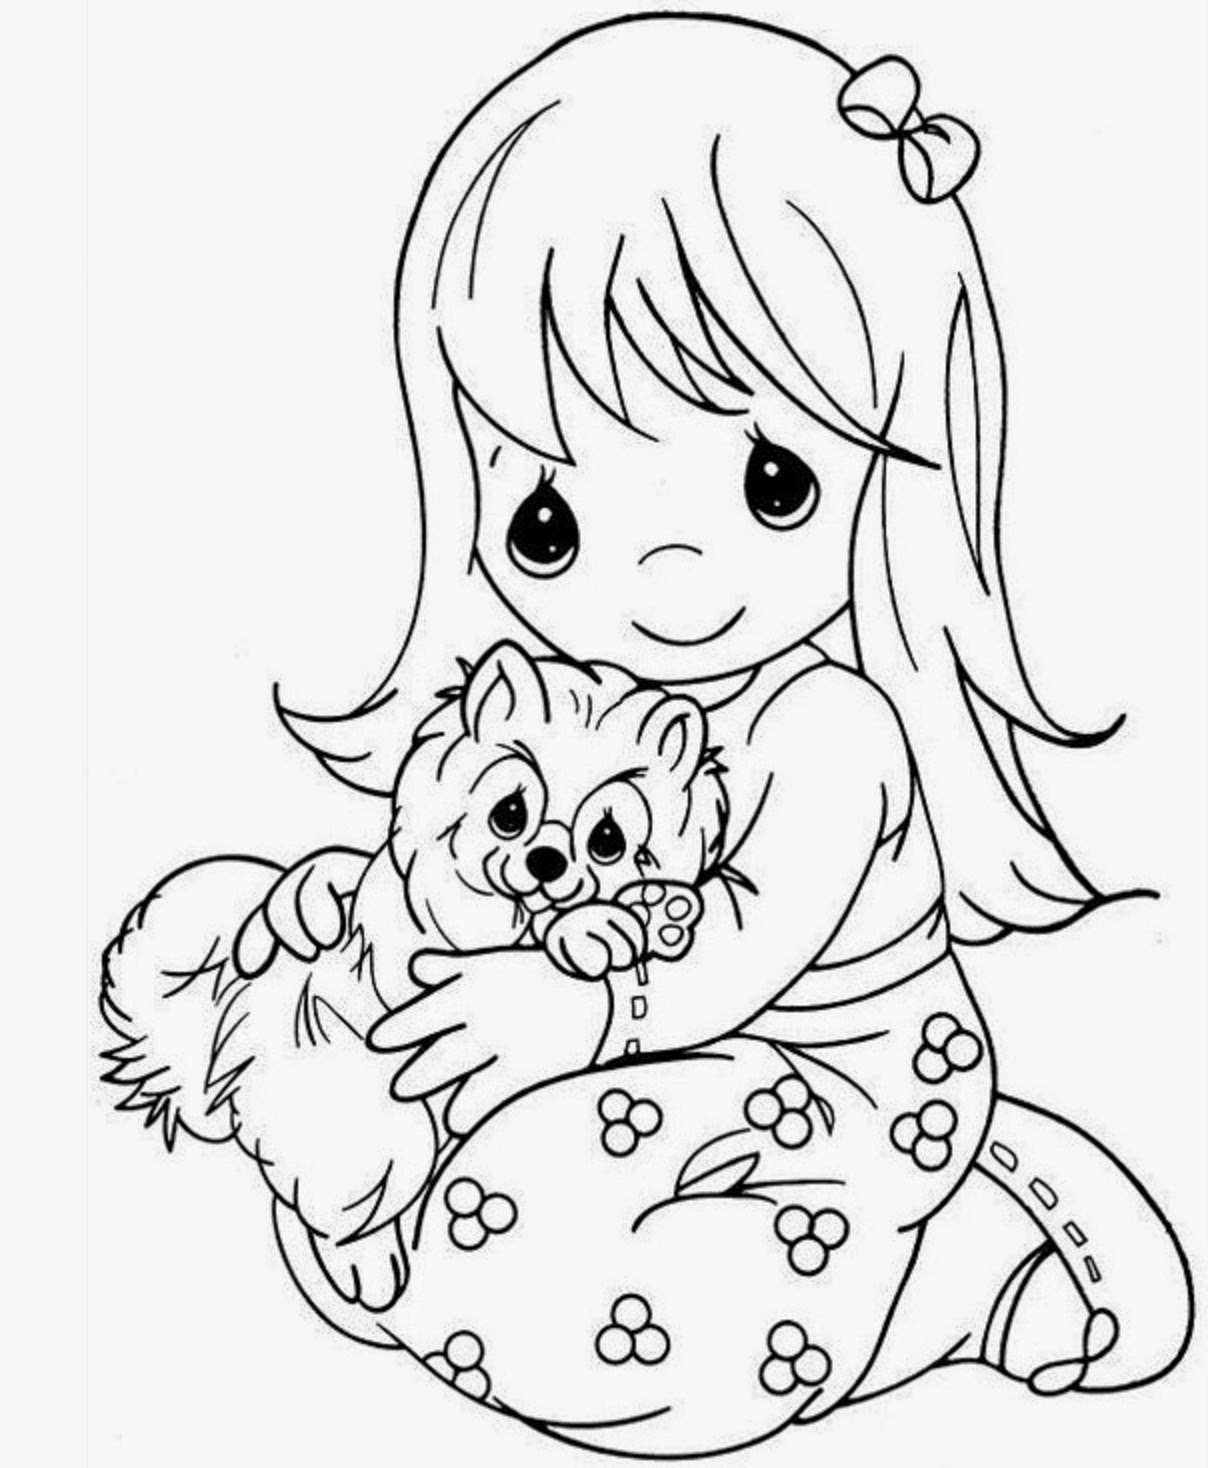 Coloring Pages For Girls: Colours Drawing Wallpaper: Beautiful Precious Moments Girl